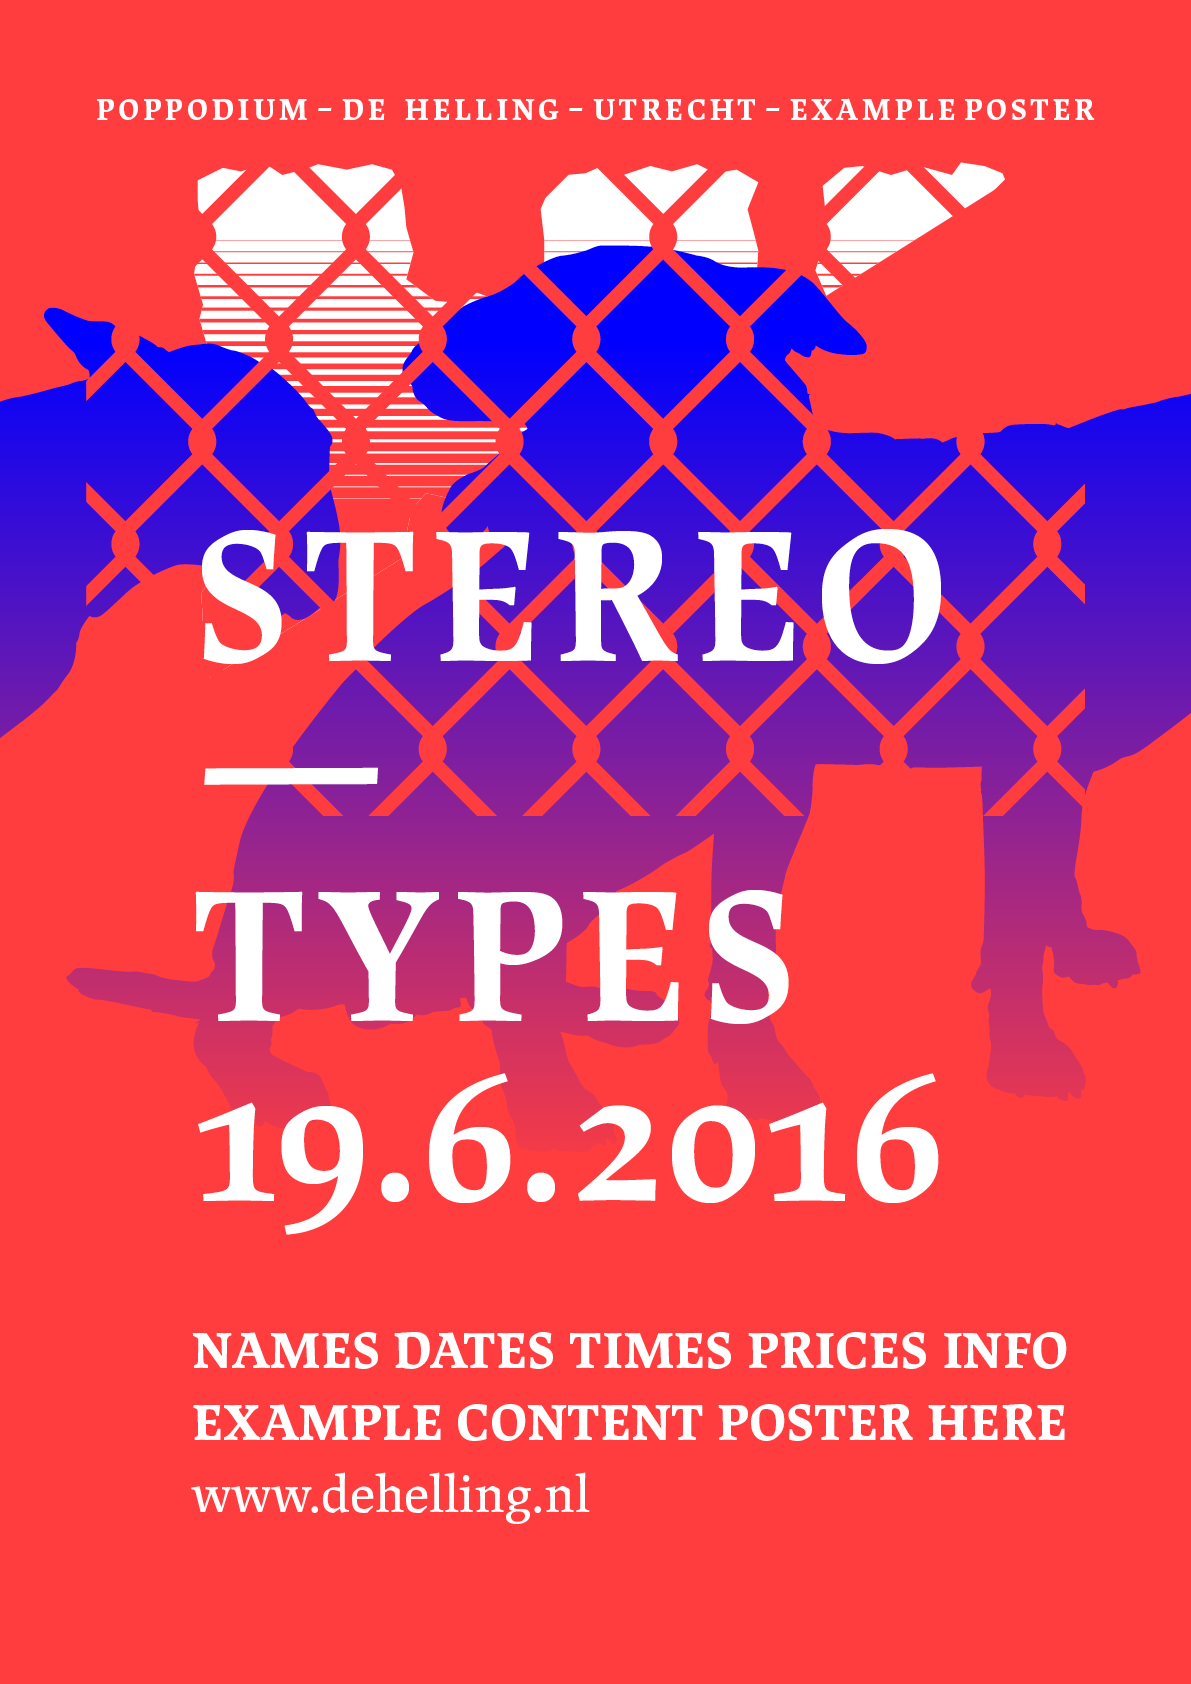 Example poster 'STEREO — TYPES'